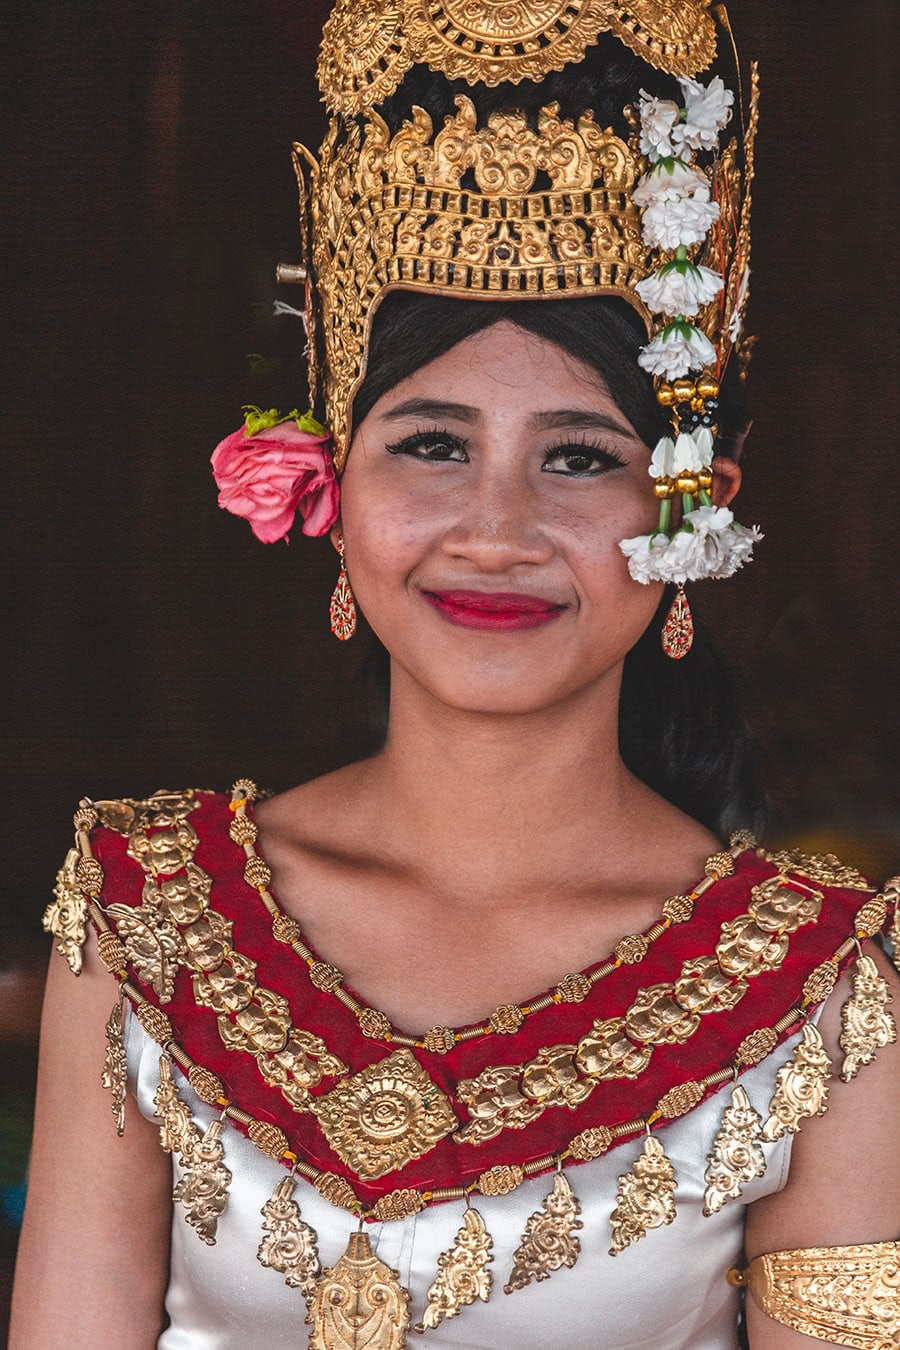 Apsara dancer in Siem Reap, Cambodia.